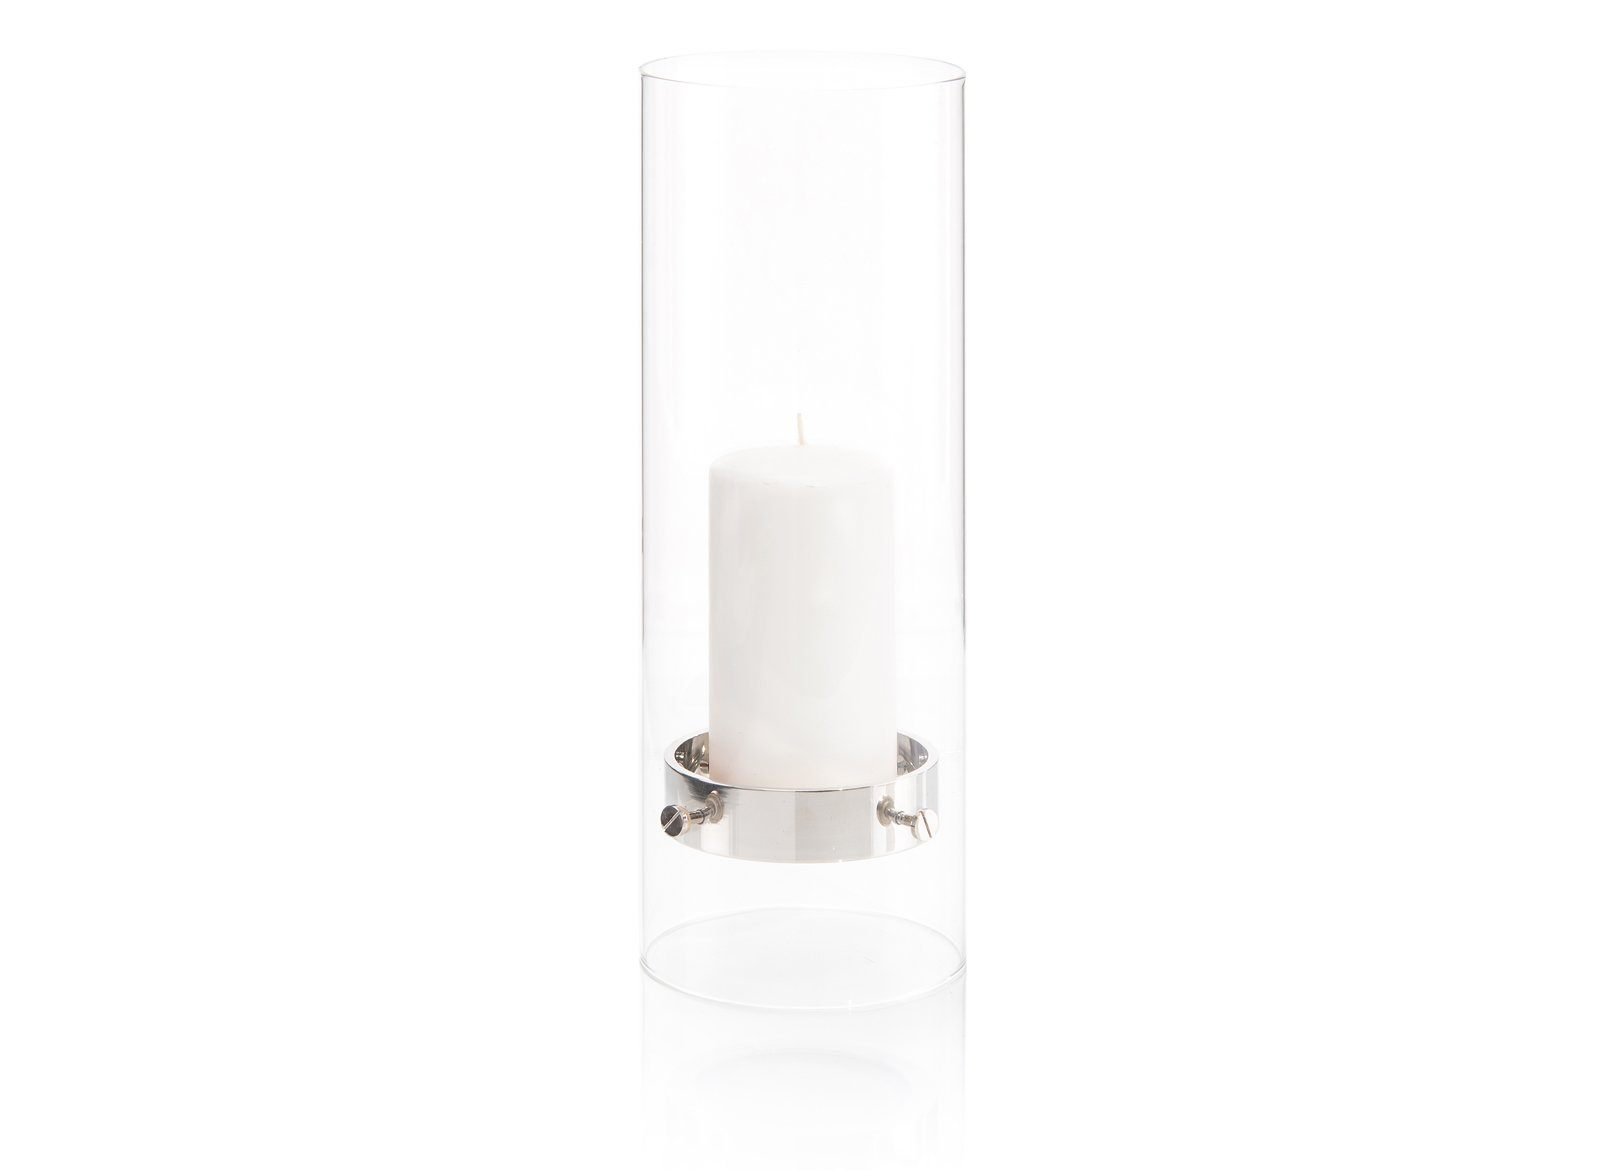 Floating Candleholder in Nickel II